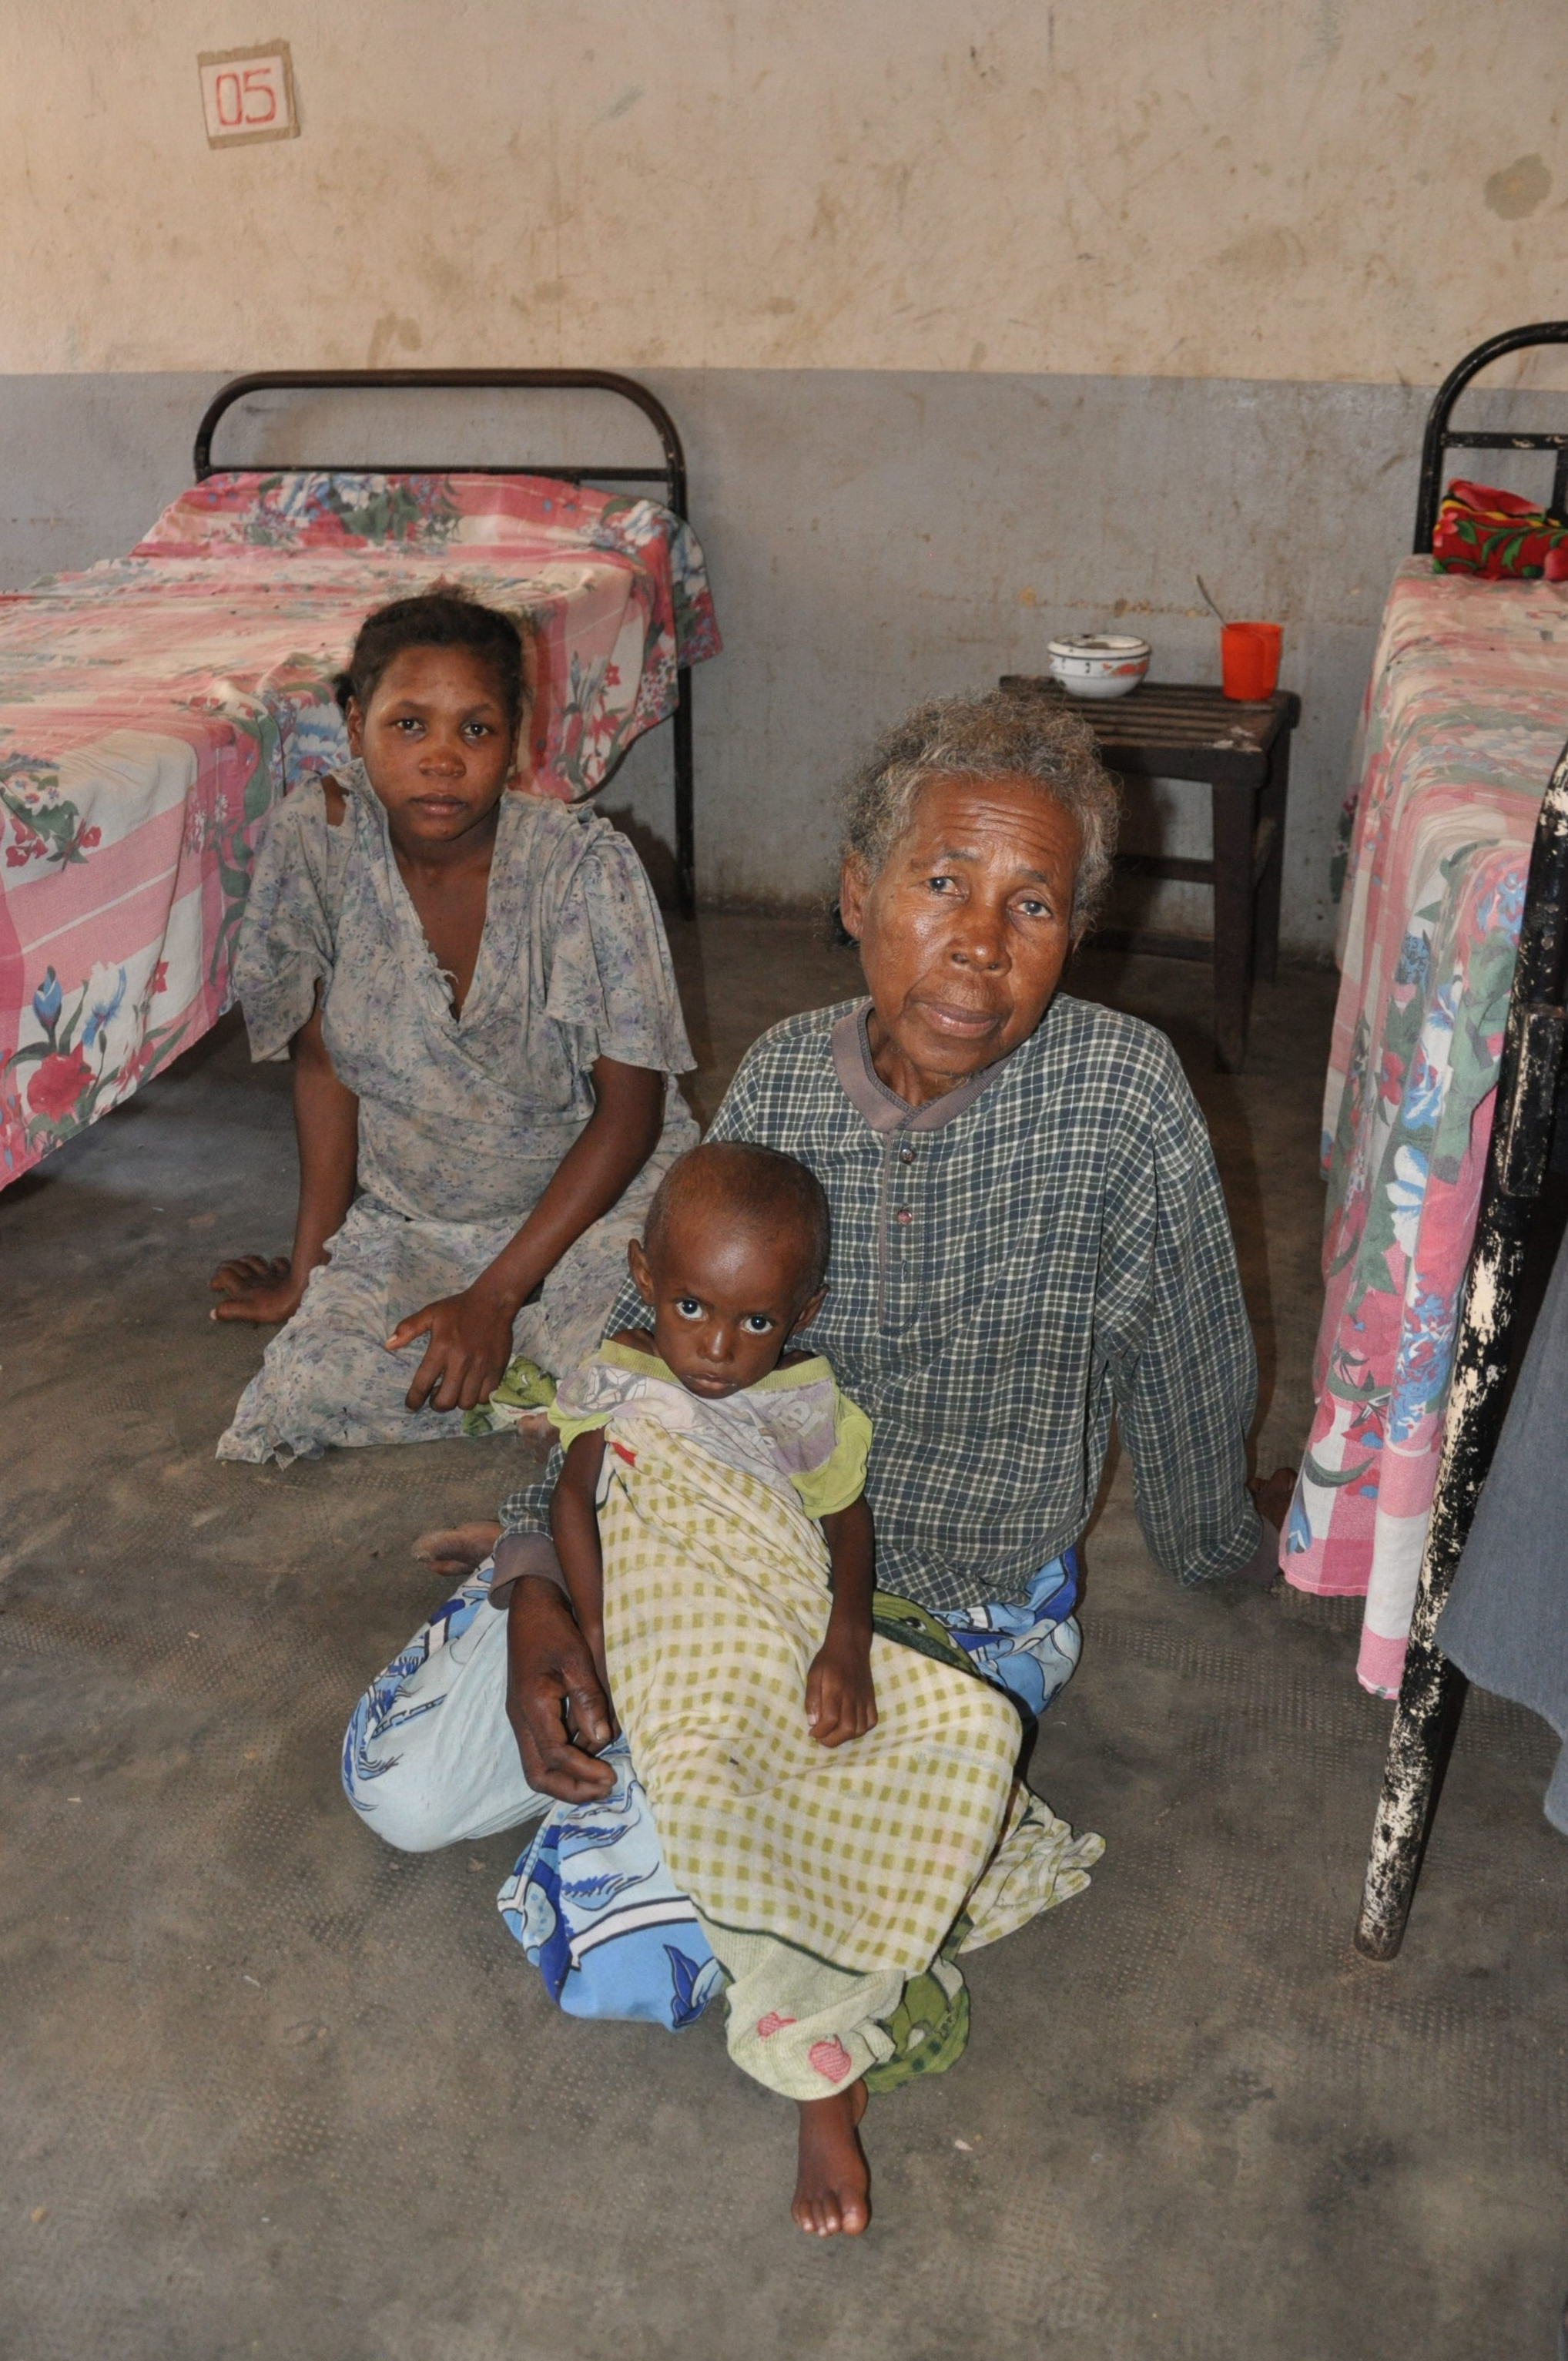 Three-year-old Lambo, who weights just 5.8 kilos, with his grandmother and mother at the Centre for the Treatment of Acute Malnutrition with Complications (CRENI) in Amboasary Sud, southeastern Madagascar